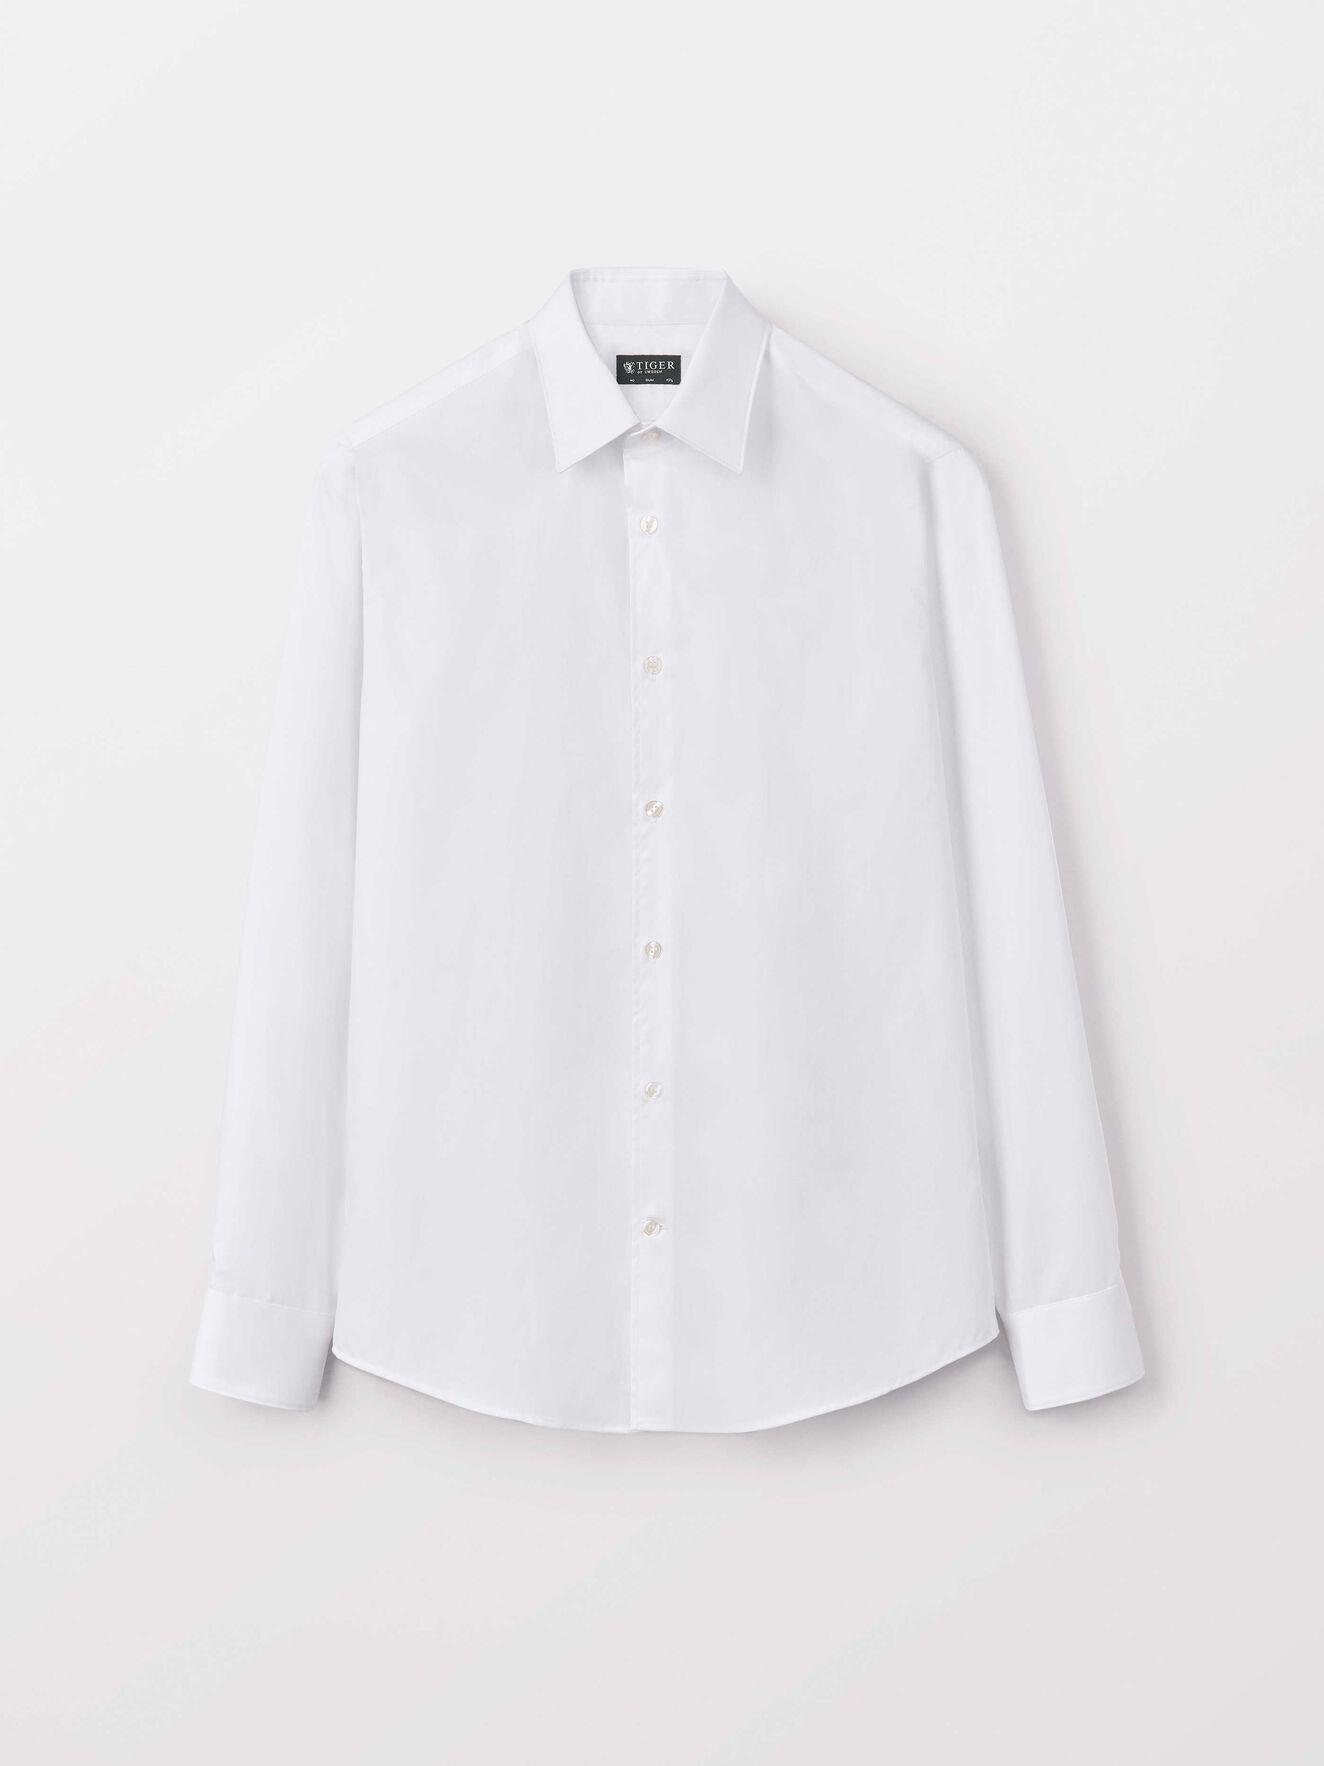 Farrell Shirt in Pure white from Tiger of Sweden